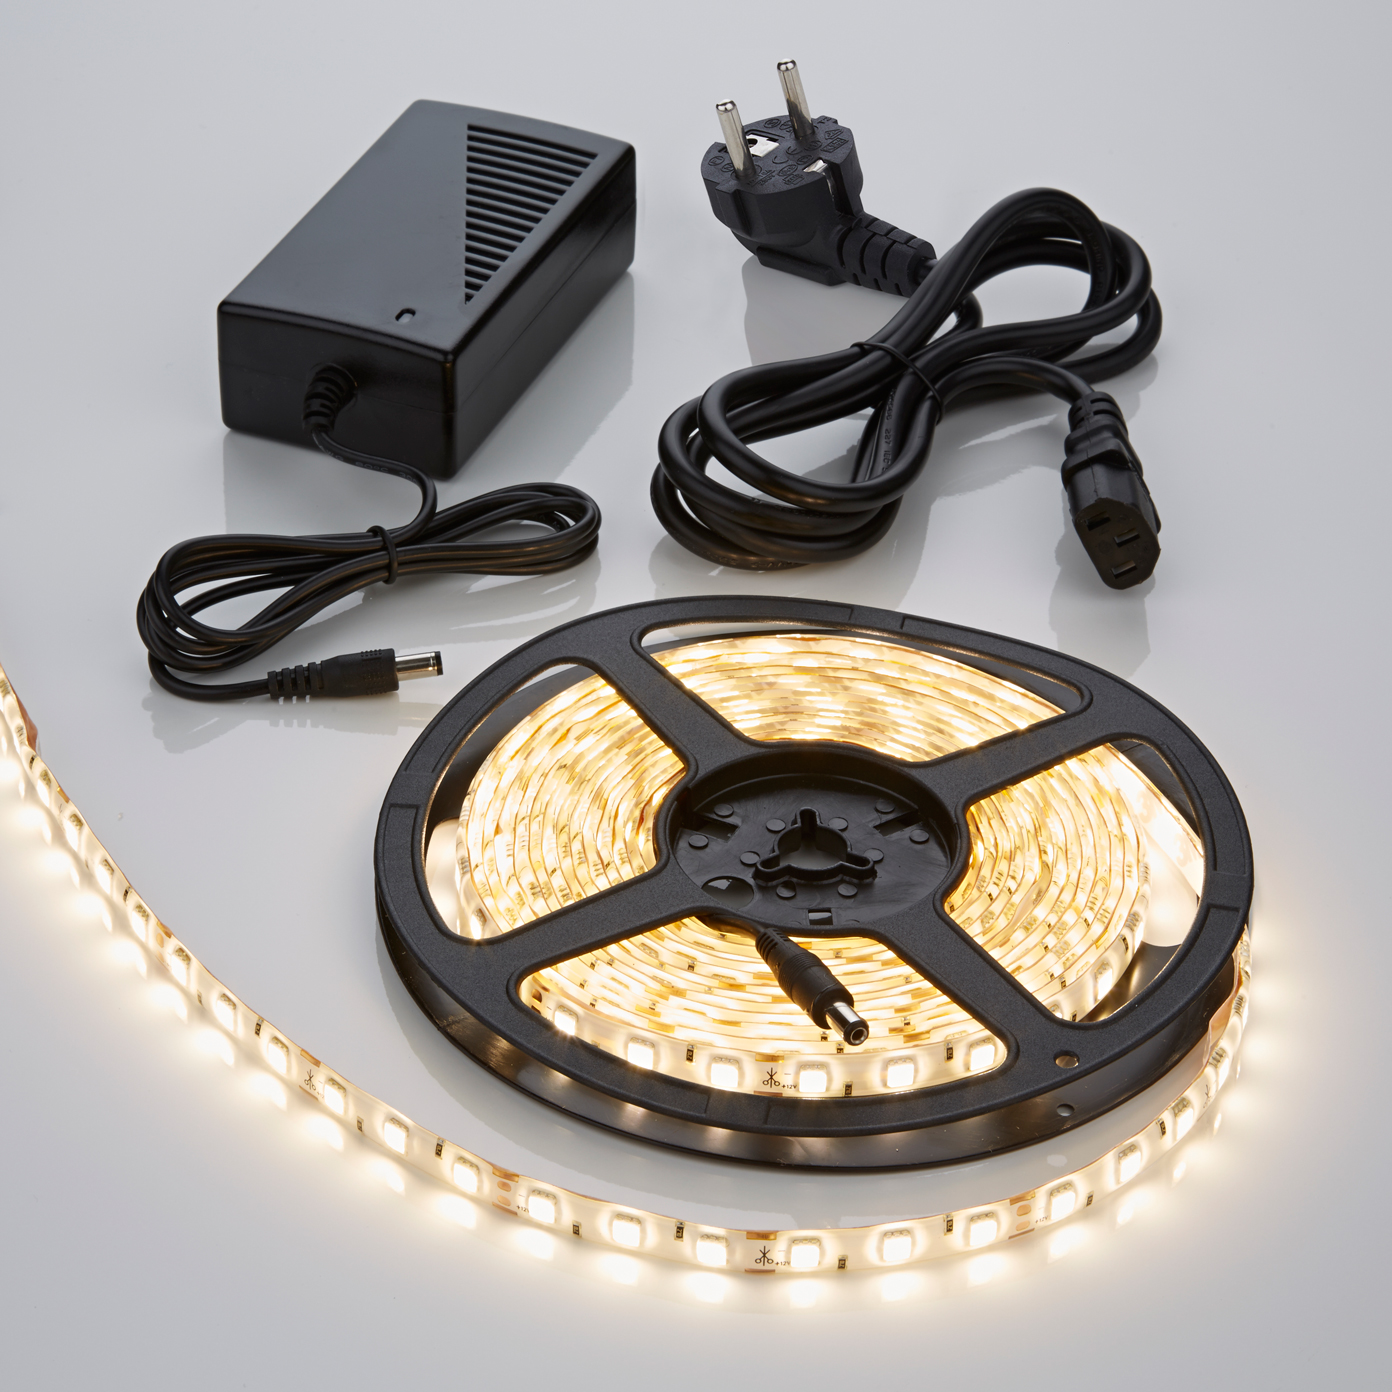 biard ip65 5050 led strip verlichting incl driver kabel 5 meter warm wit. Black Bedroom Furniture Sets. Home Design Ideas